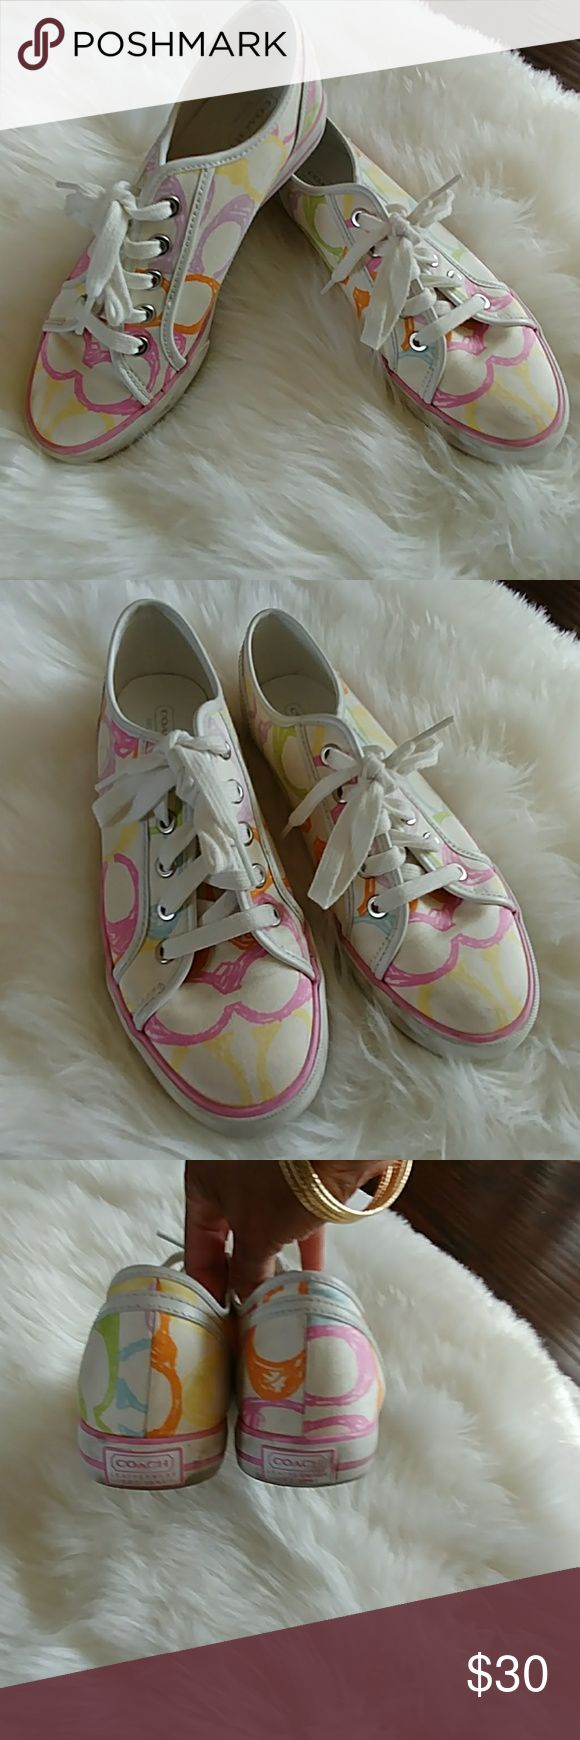 Women's coach tennis shoes Pastel coach tennis shoes, wore twice, just not a tennis shoe gal. Still in good shape, ready for a new home. Coach Shoes Sneakers